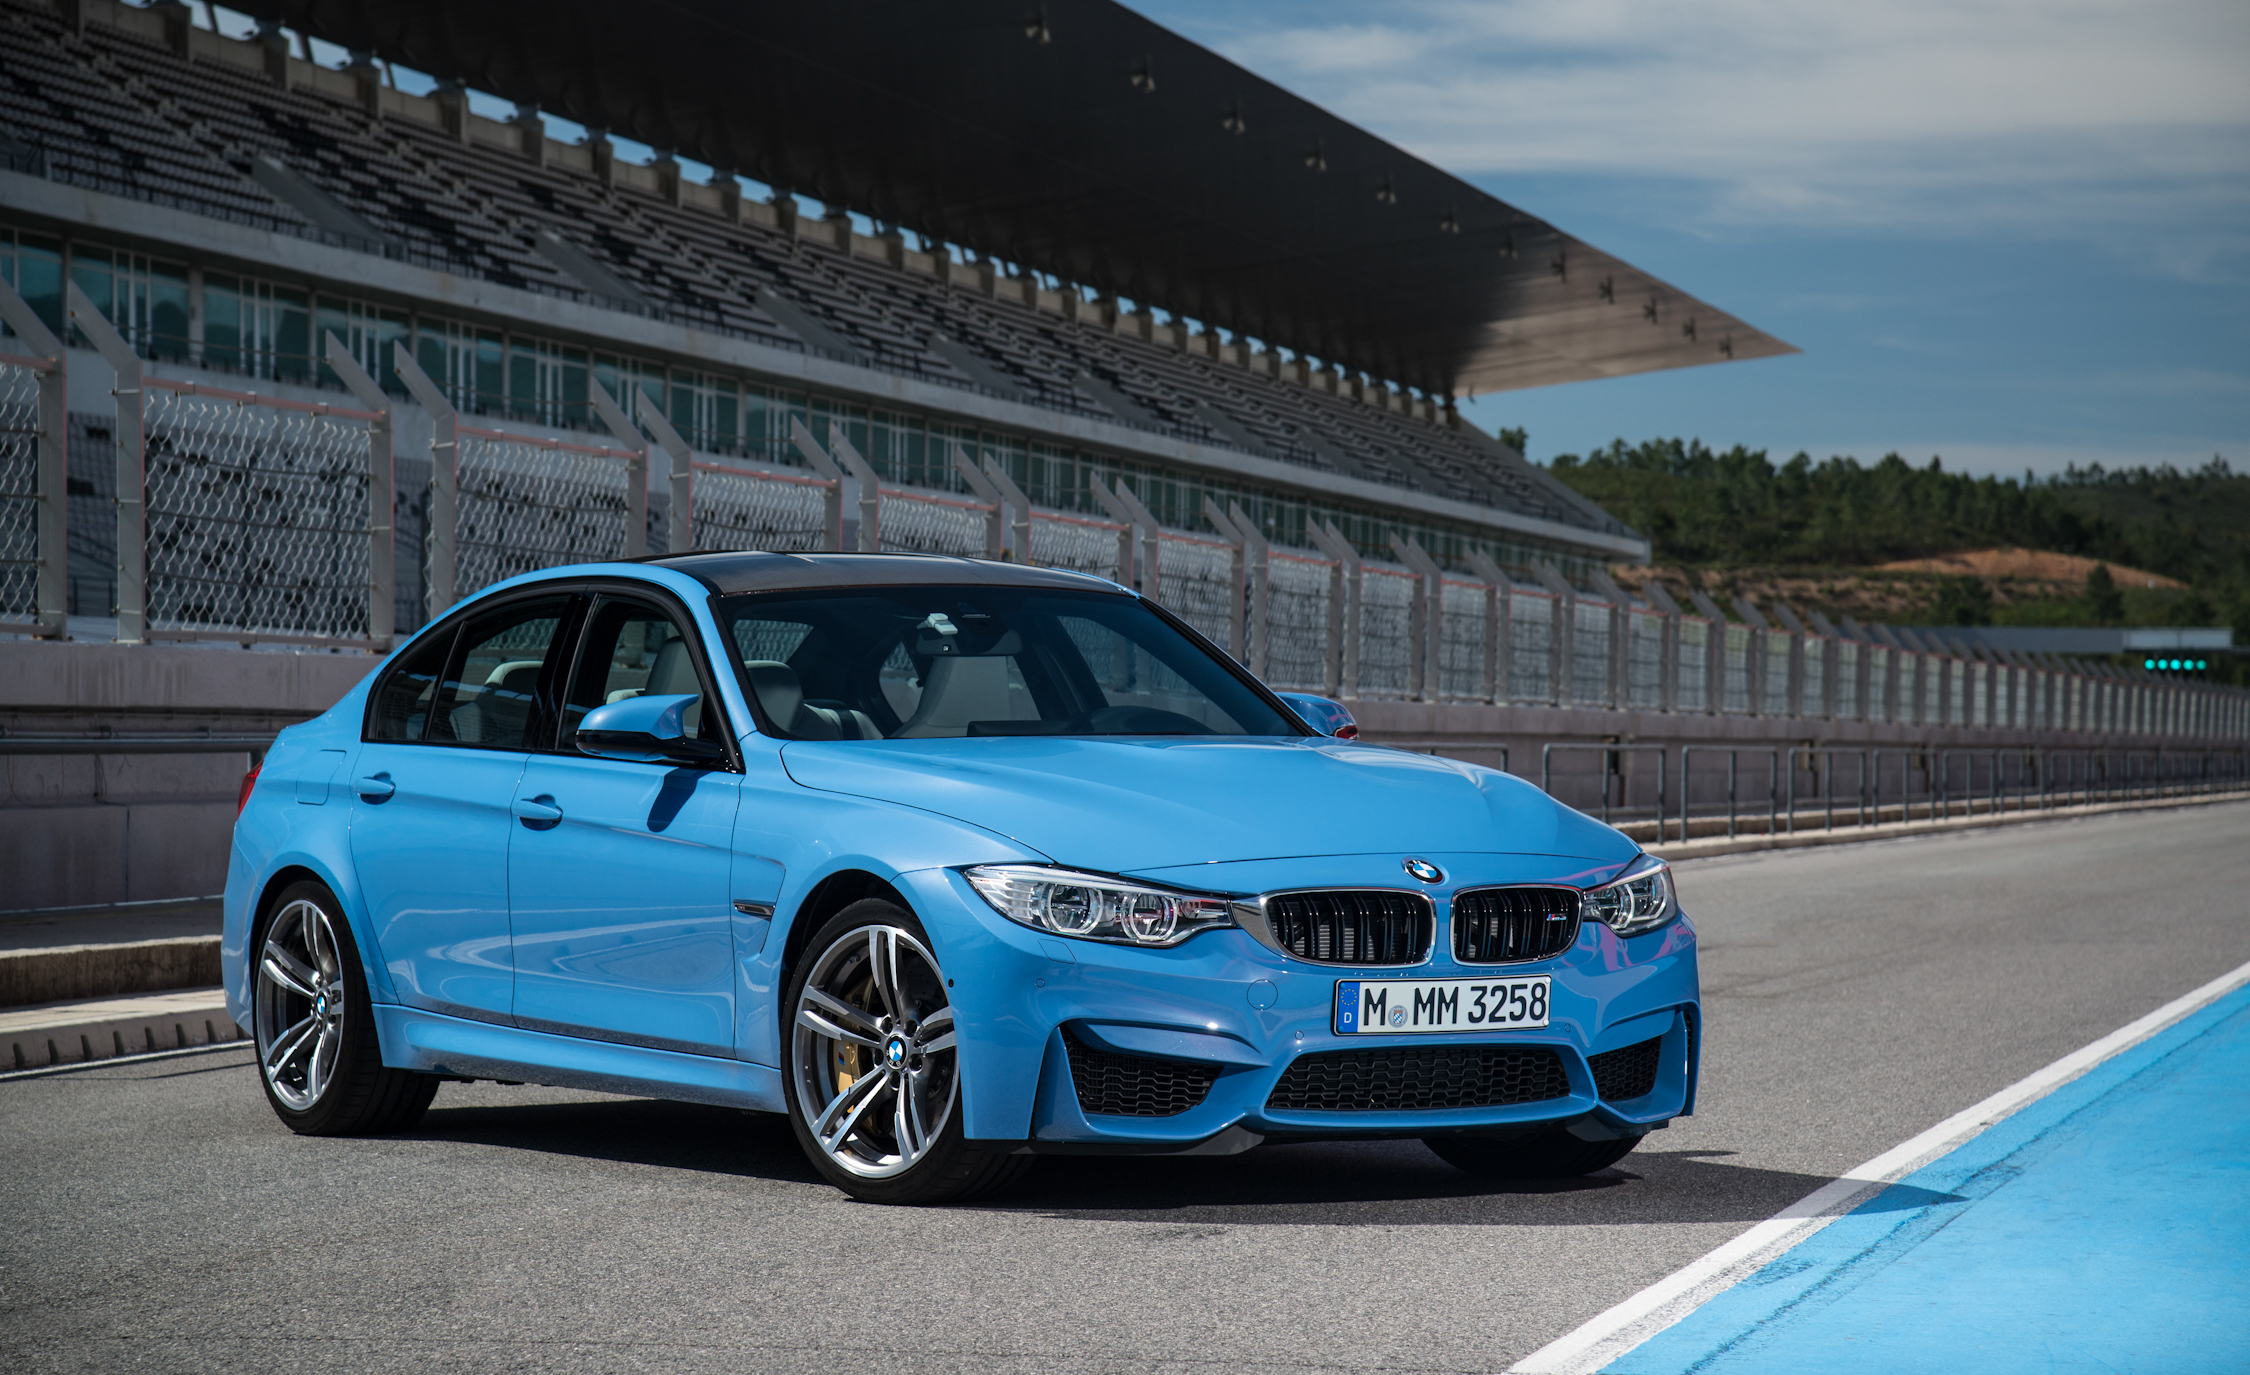 2015 BMW M3 Photo Side and Front